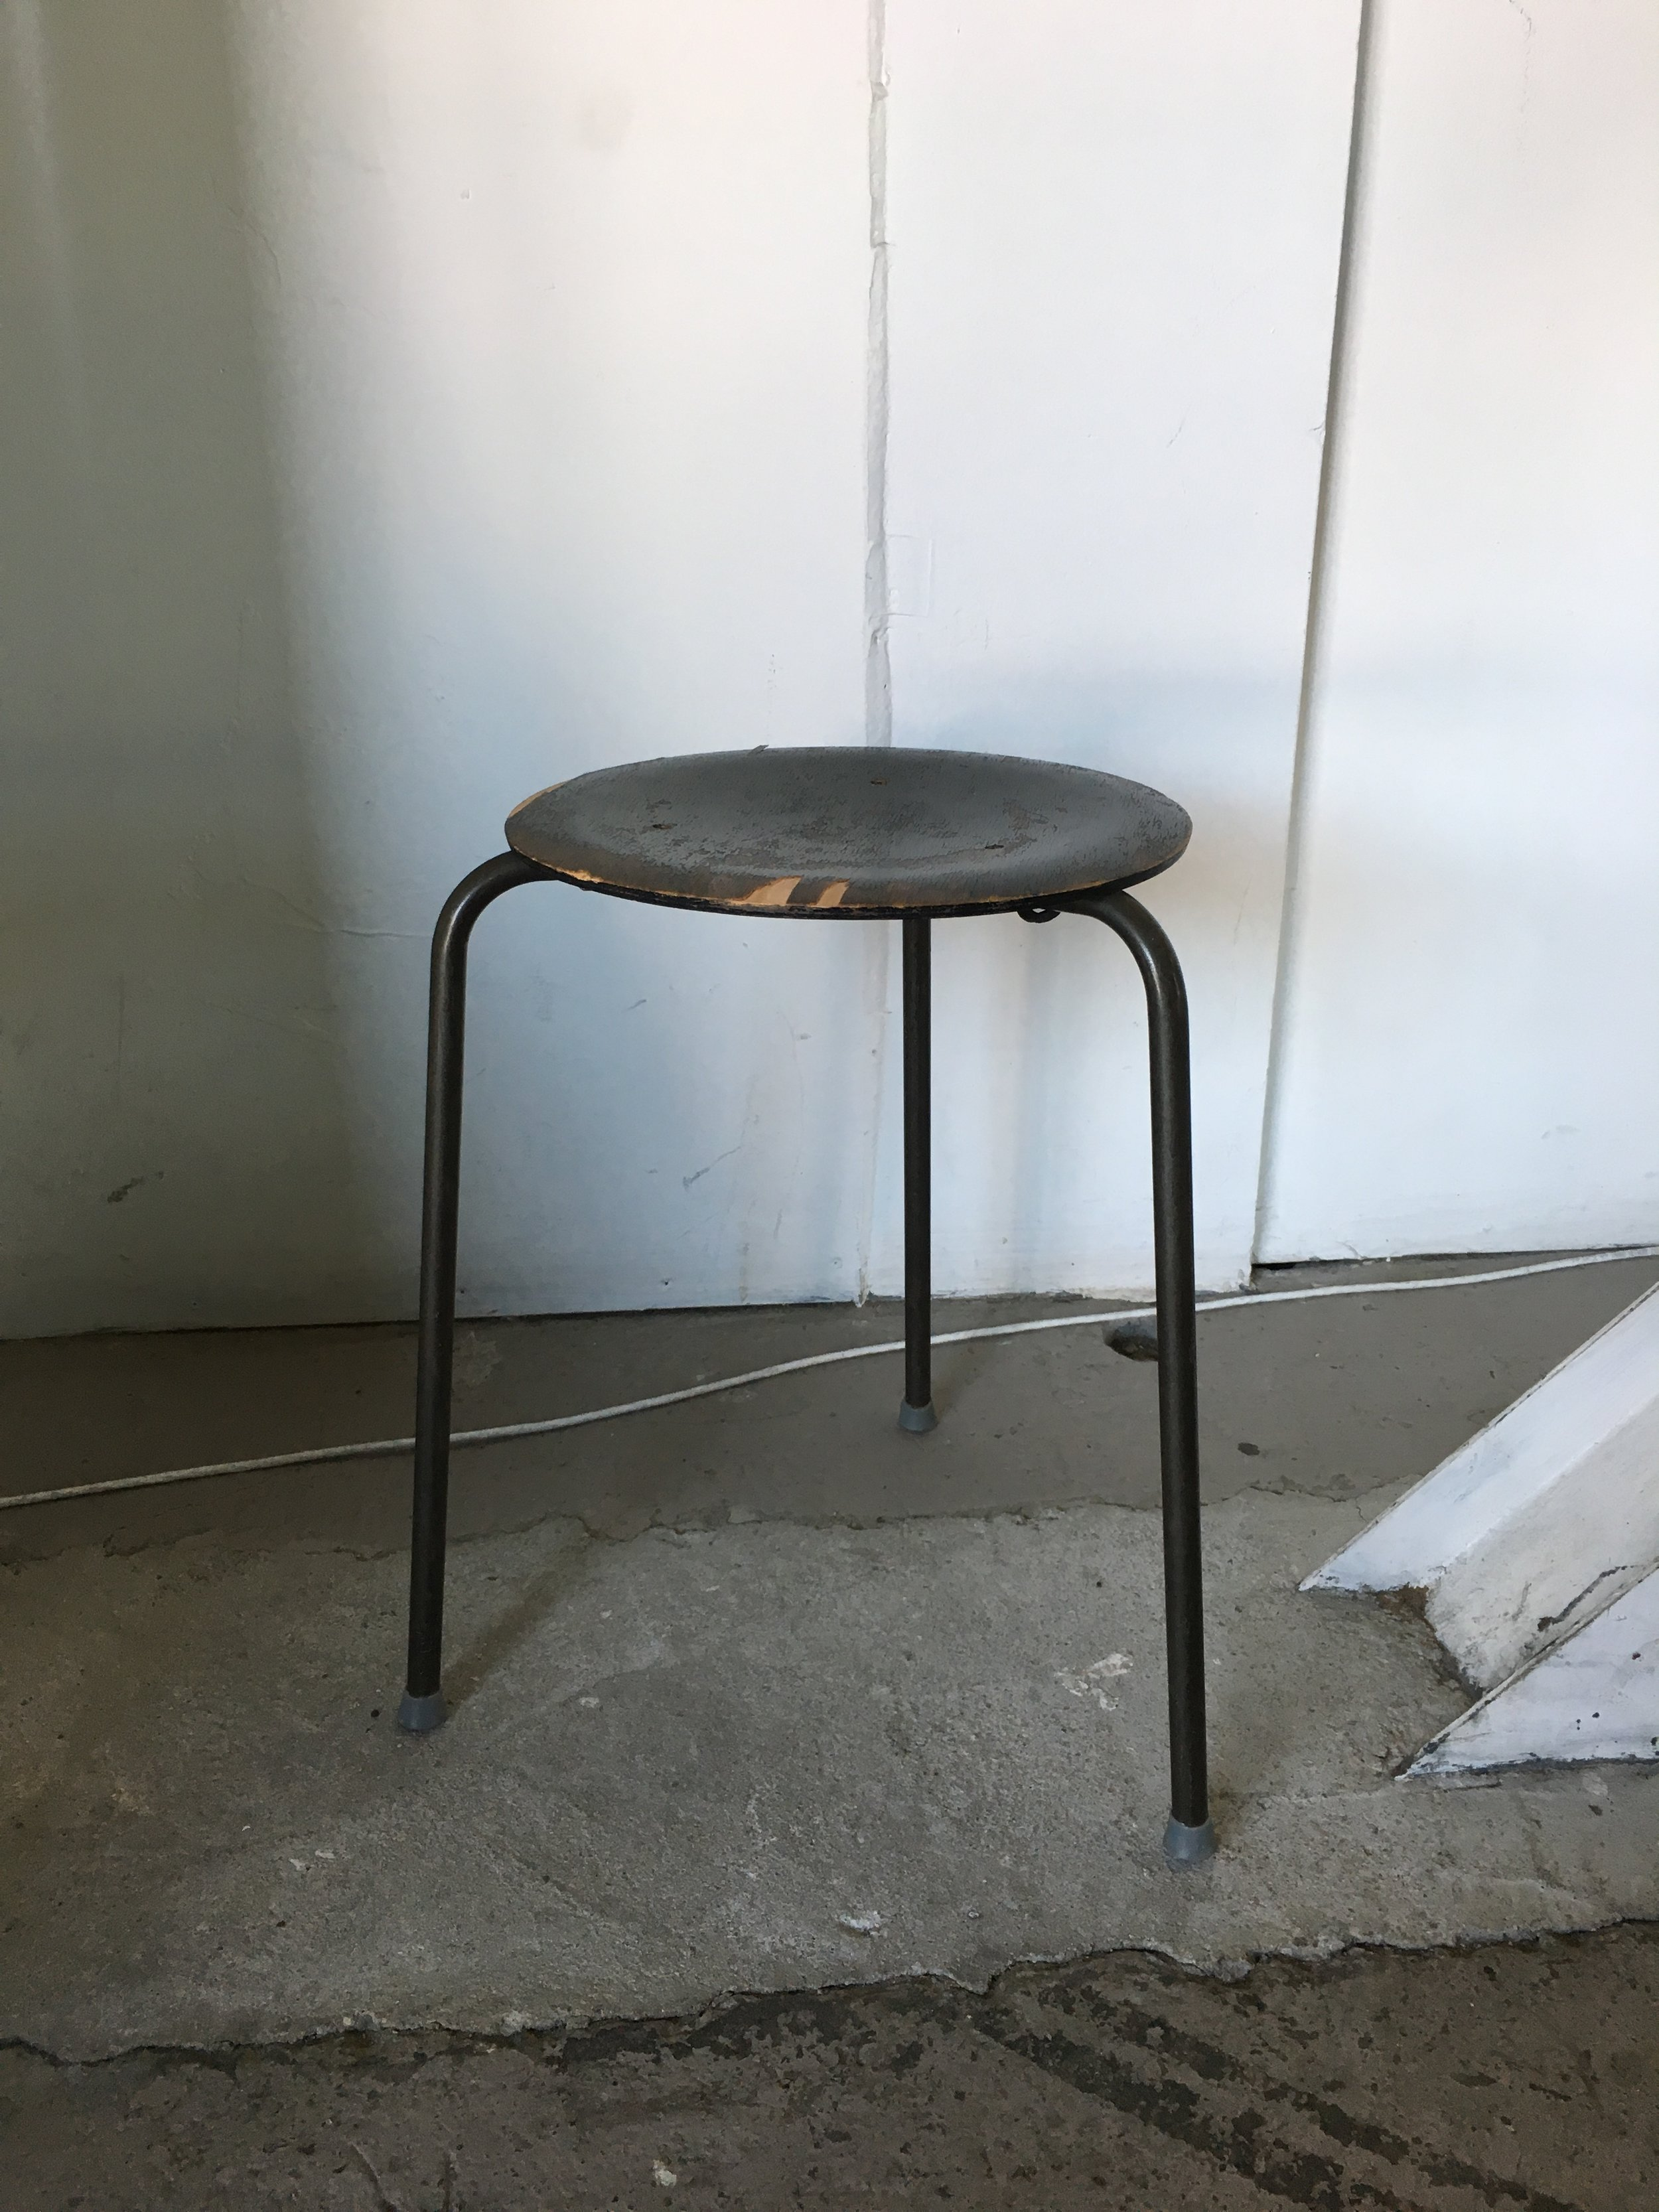 Antique Wooden Stool with Metal Legs Quantity: 2